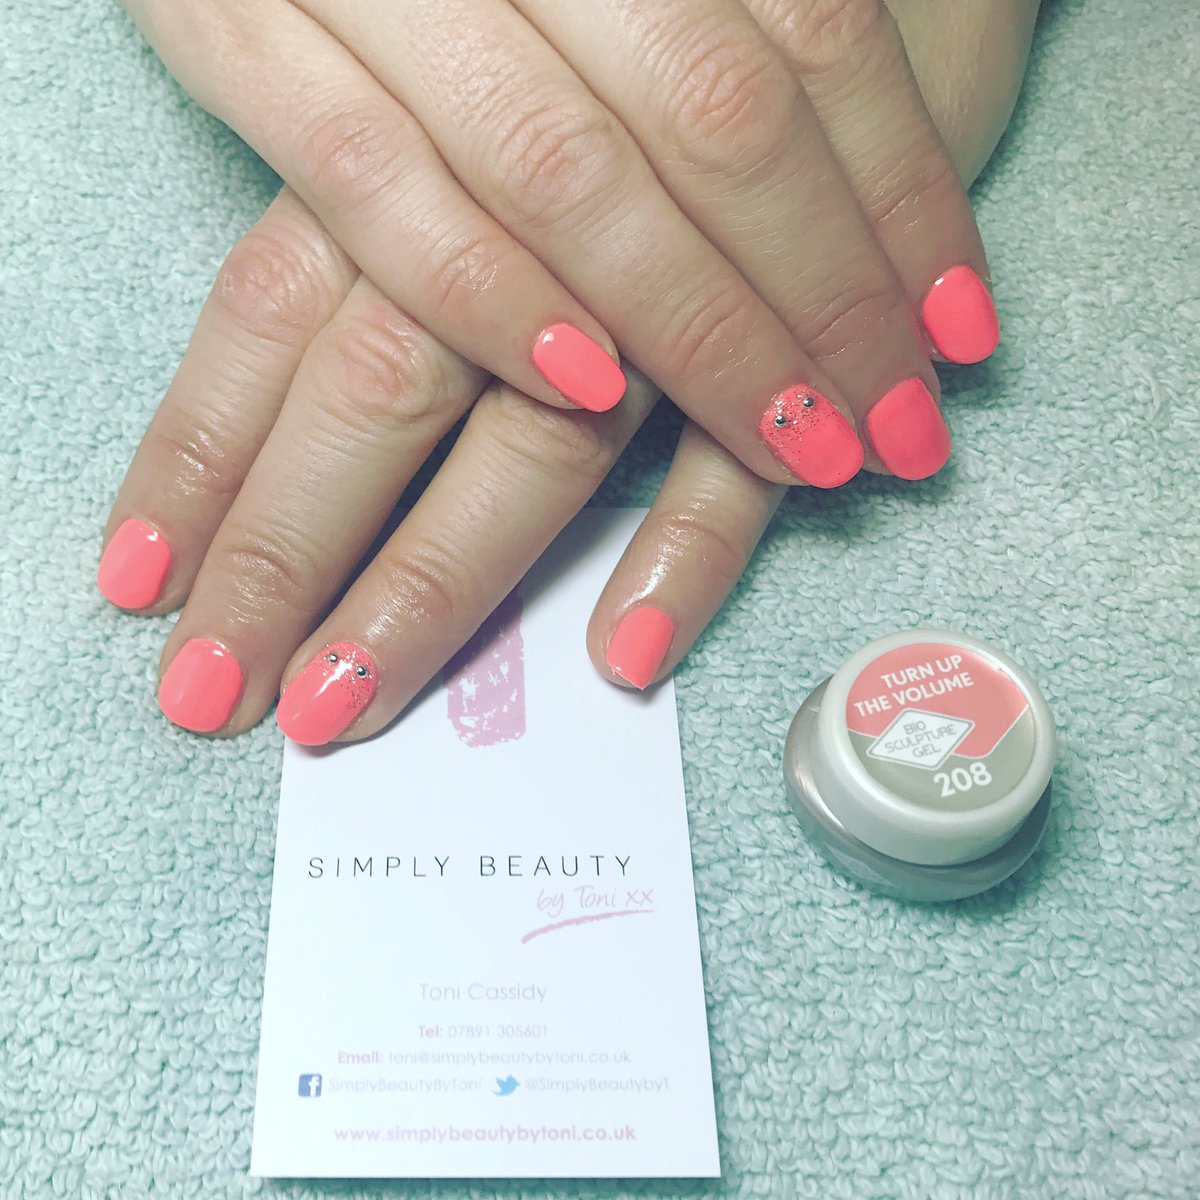 Simply Beauty Bytoni On Twitter Some Biosculpturegb Nails In 208 Turn Up The Volume For Francesca S Holiday Enjoy Gelnails Biosculpture